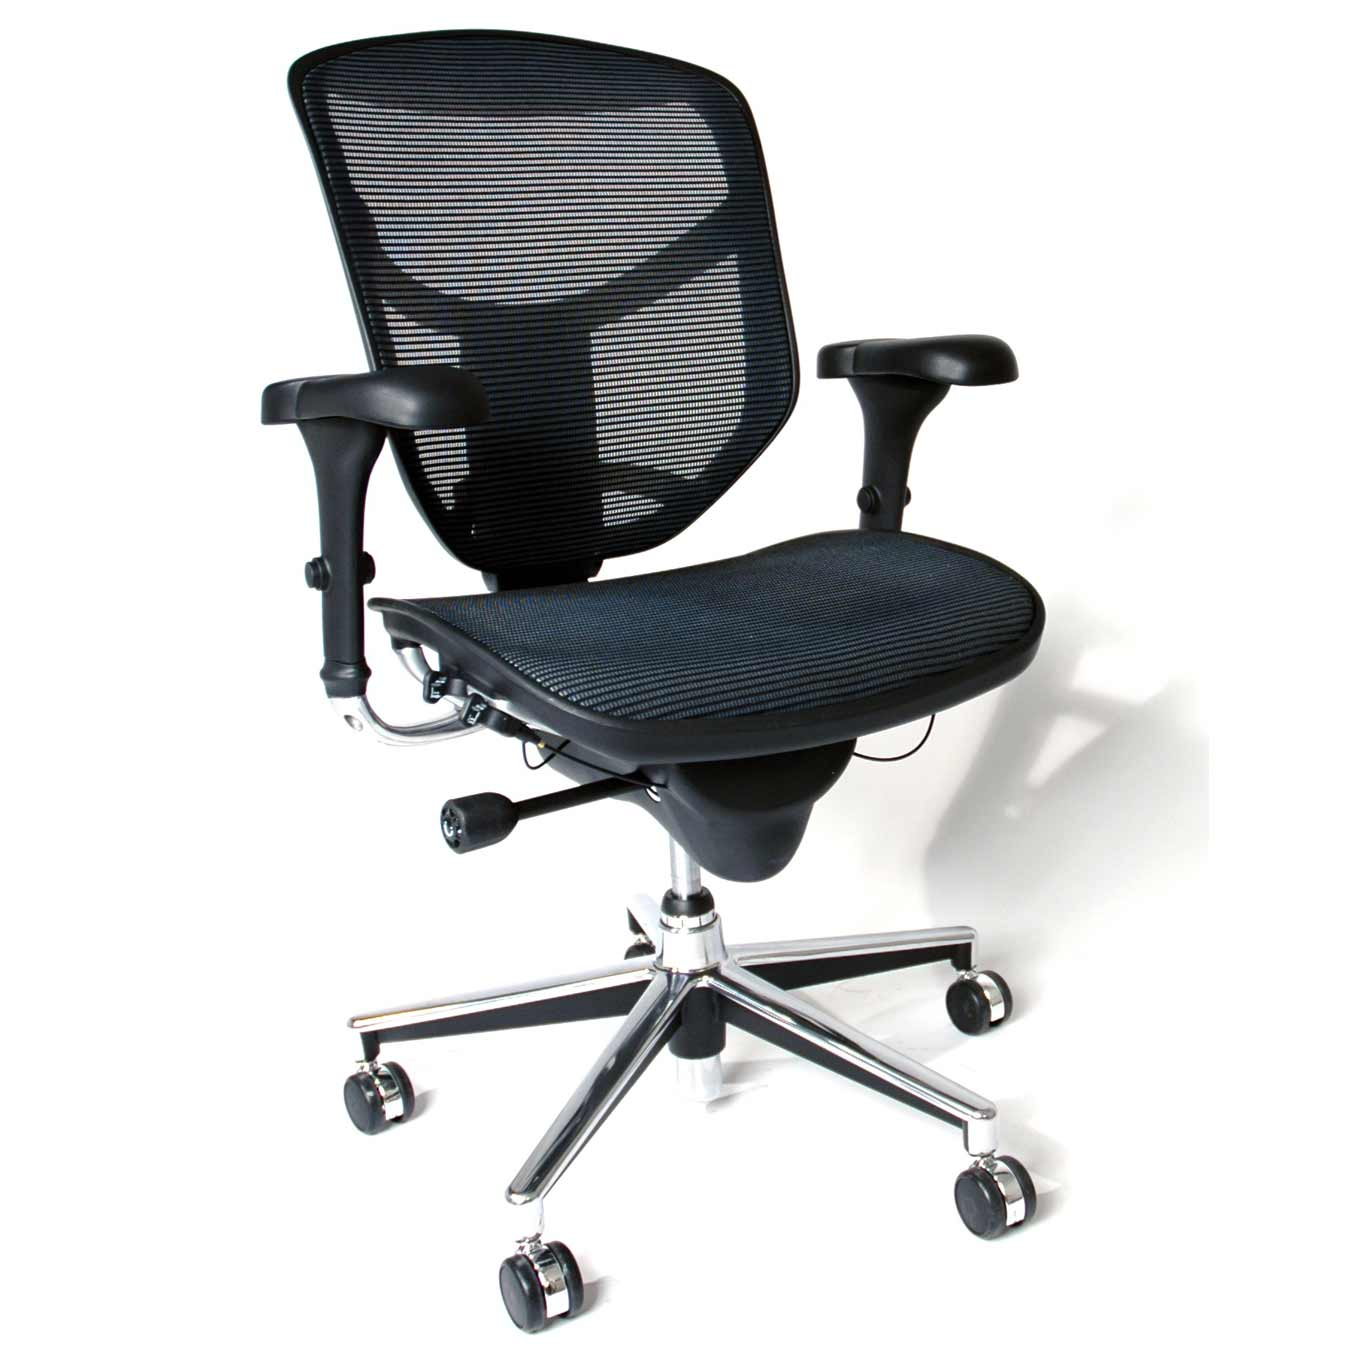 Aeron ergonomic black office mesh chairs